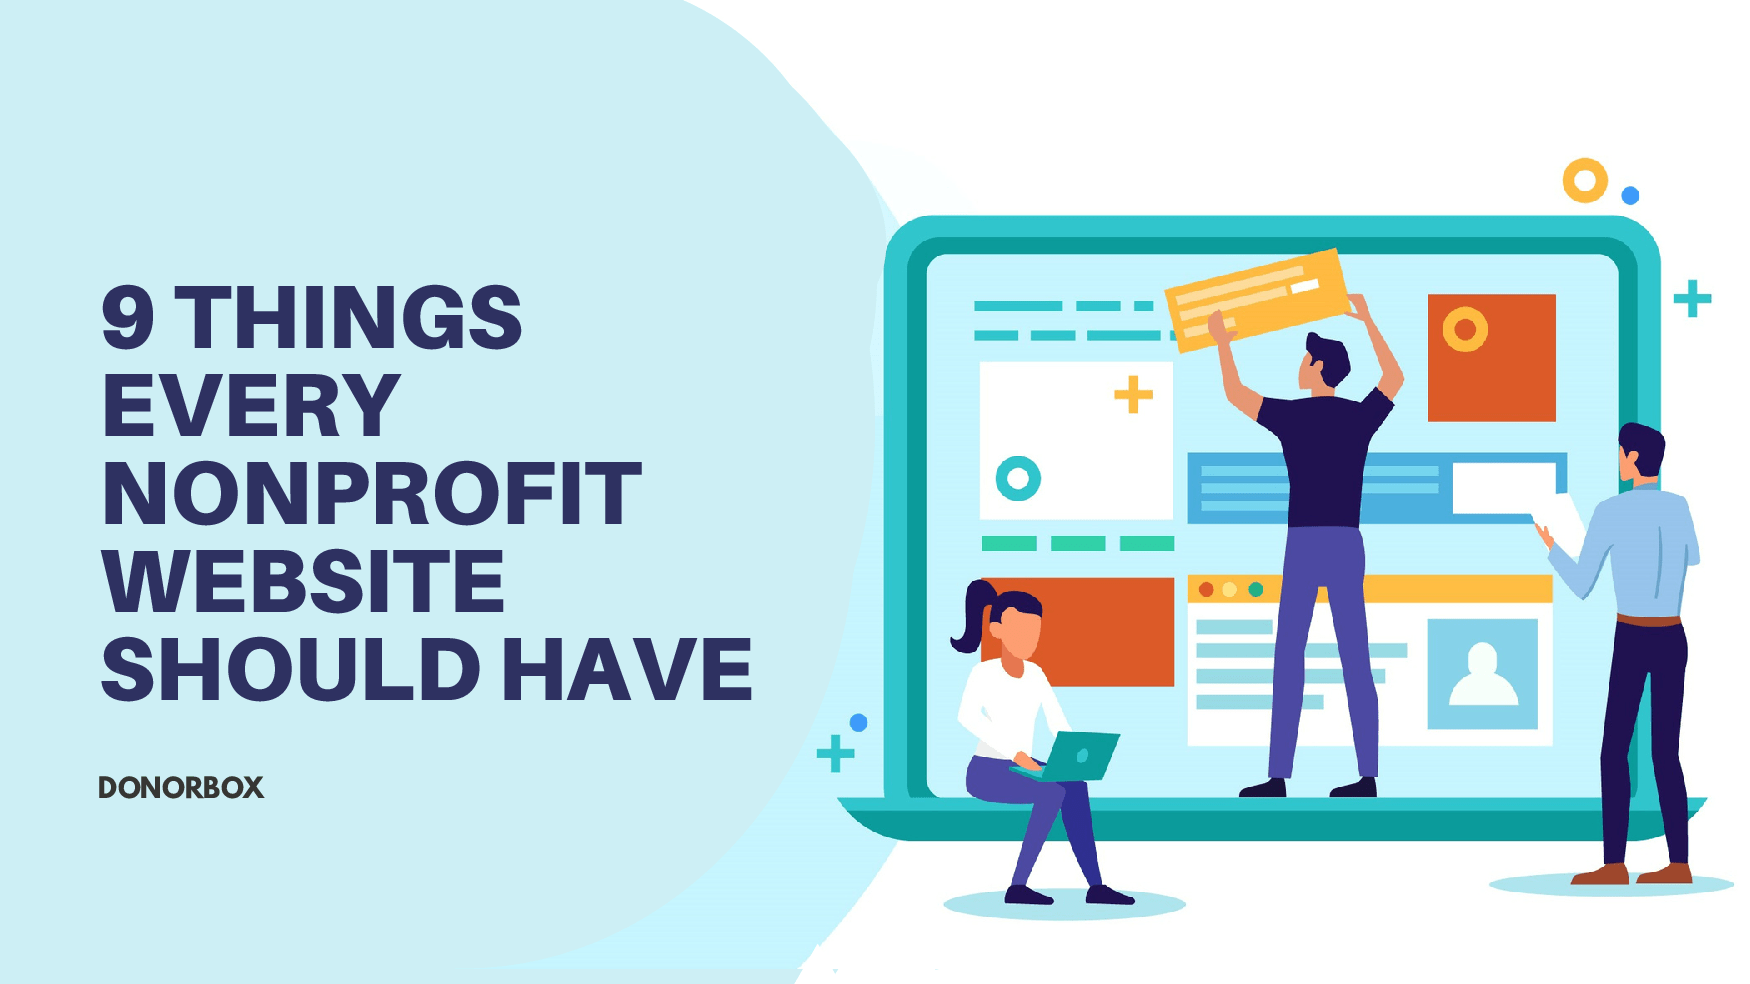 9 Things Every Nonprofit Website Should Have